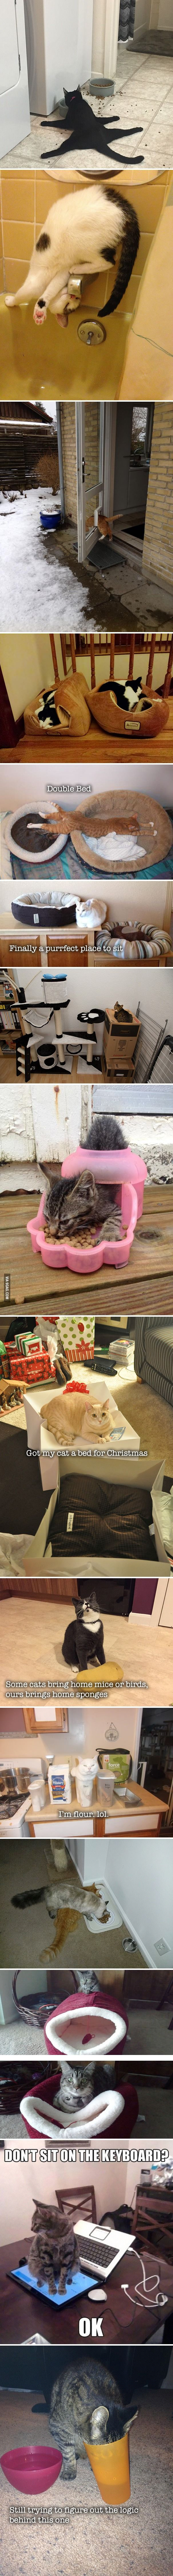 Cat logic. Lol